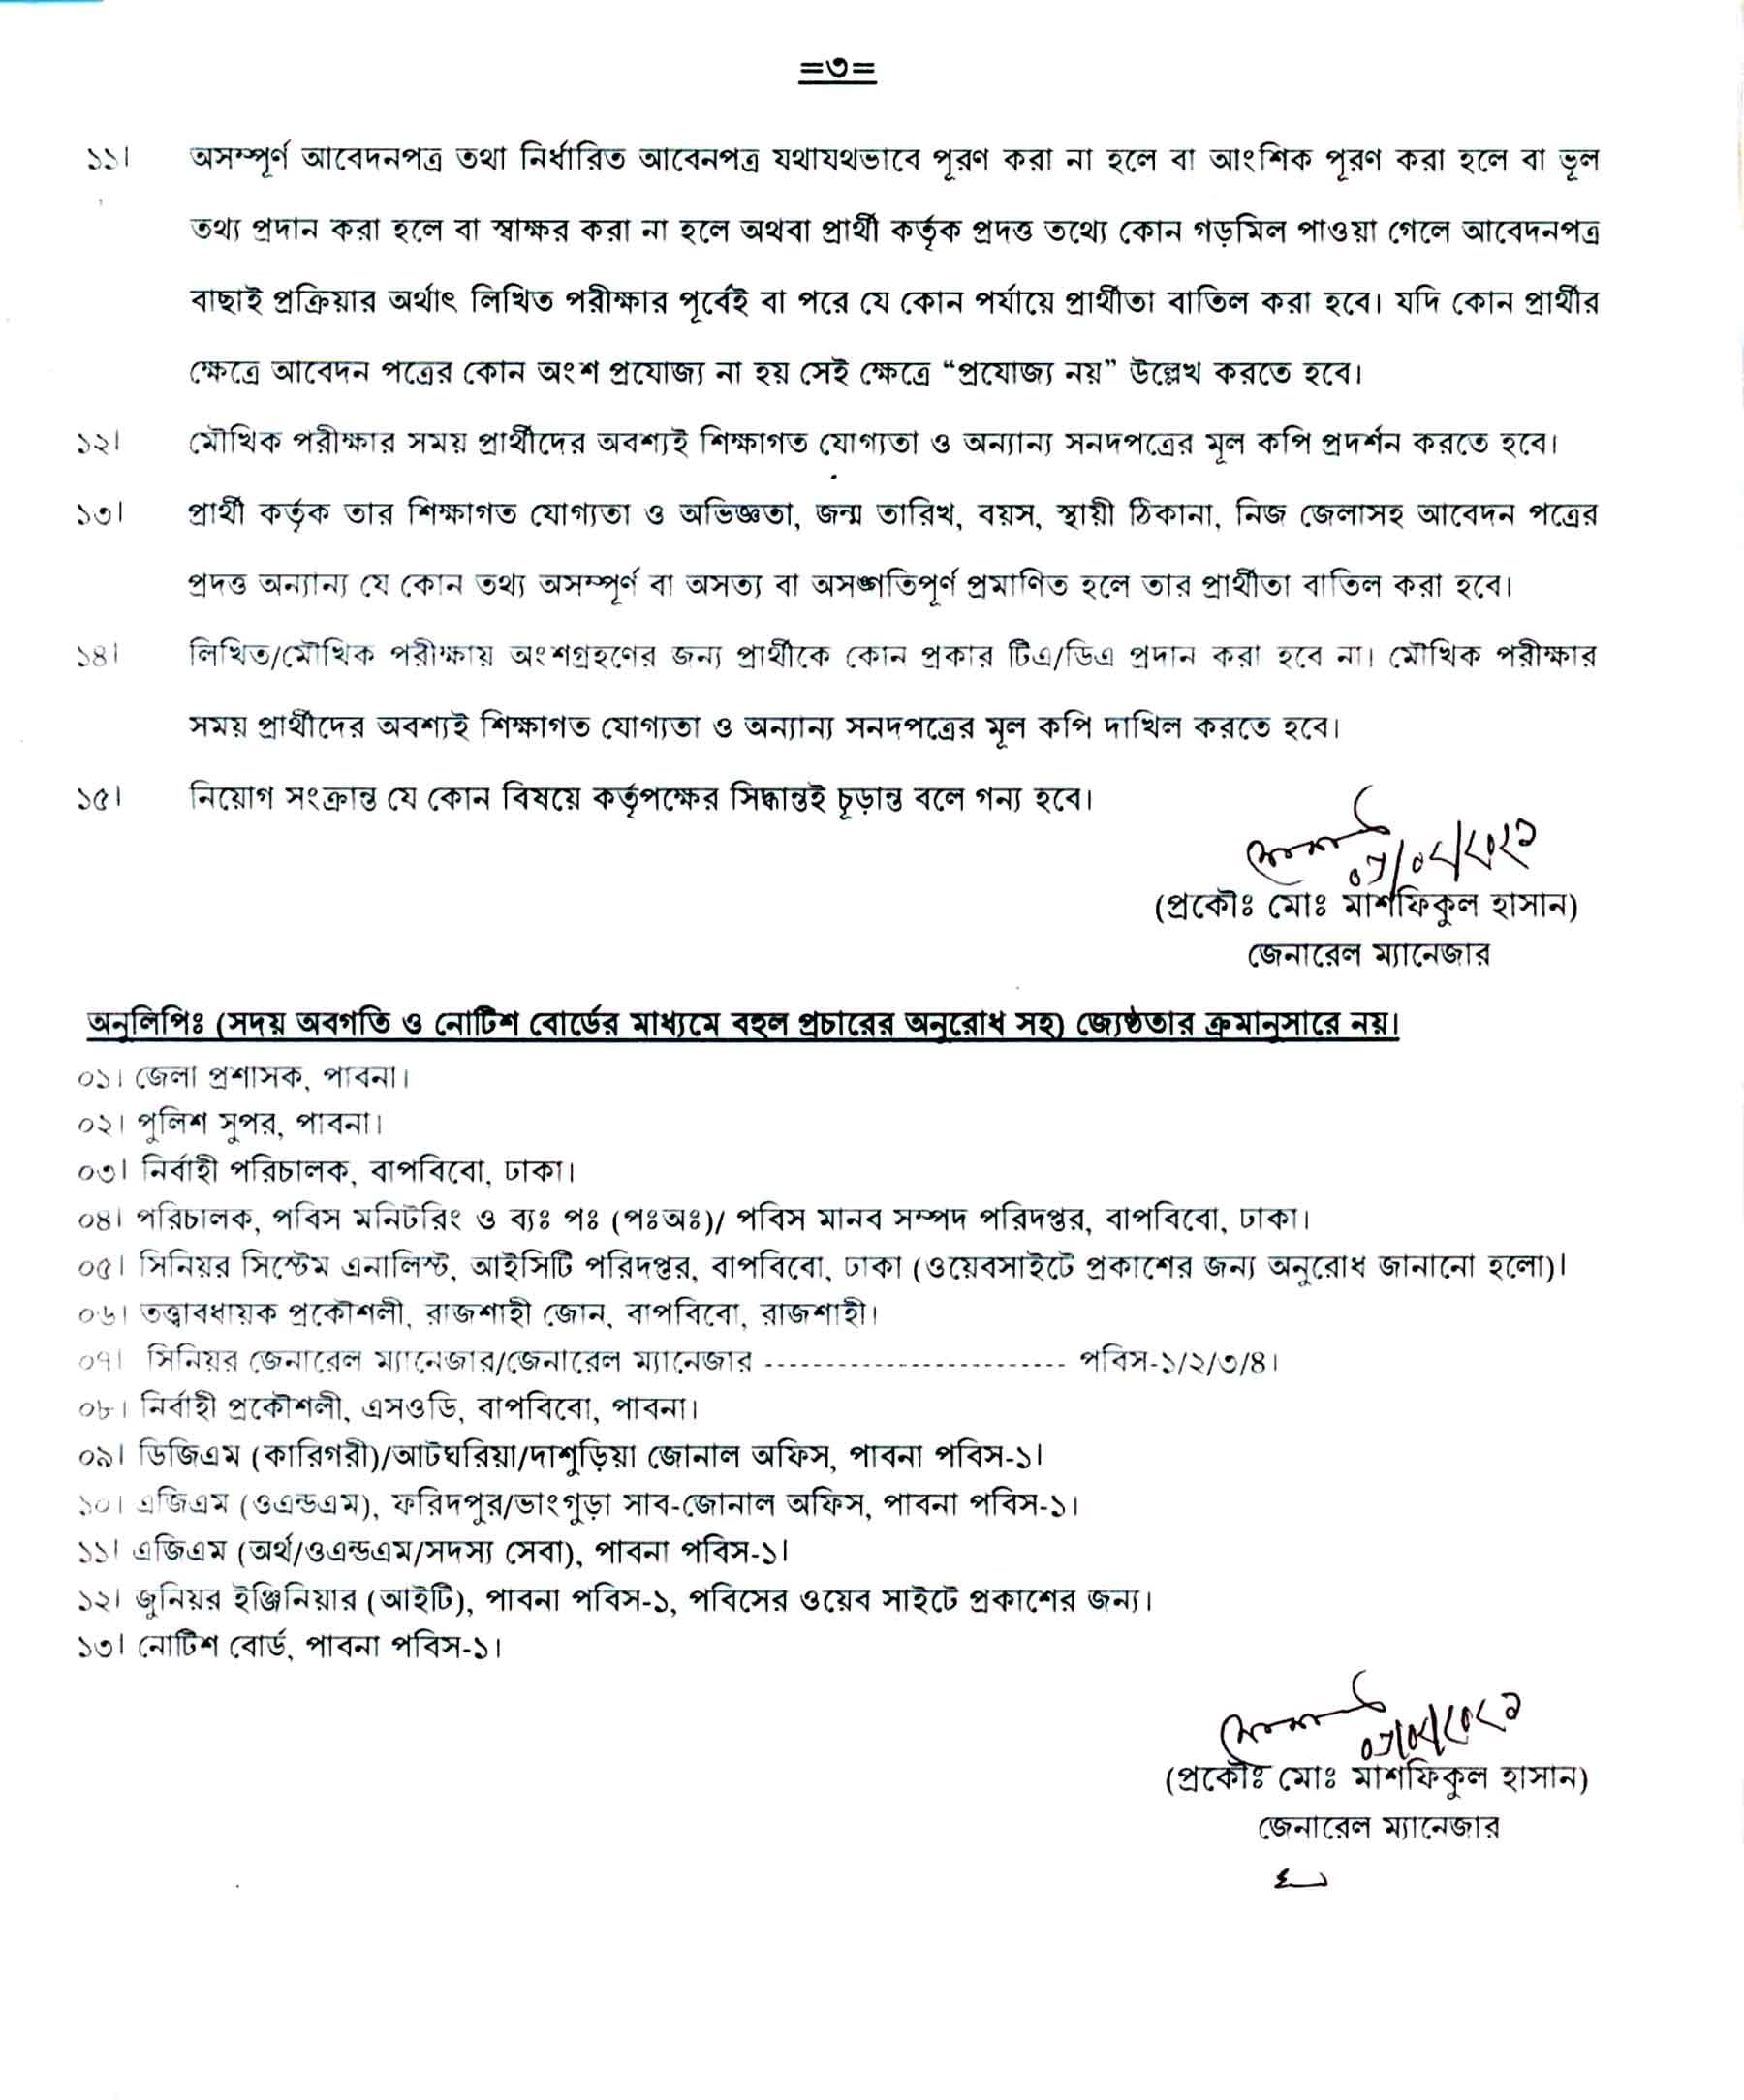 Pabna PBS Job Circular 2021